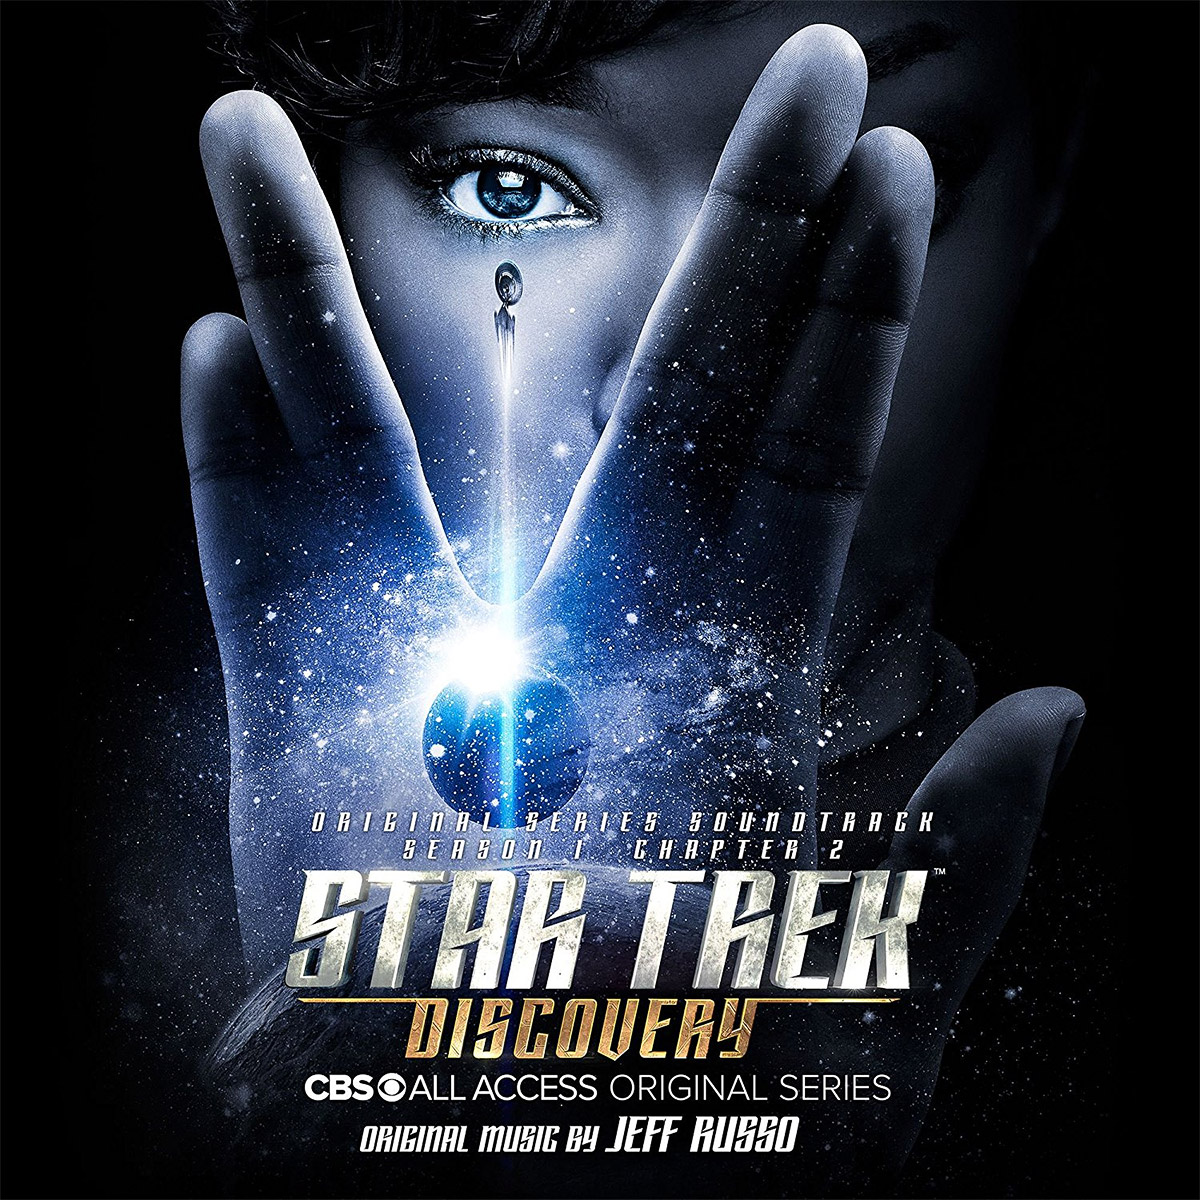 Full Details, Track Listing for Next DISCOVERY Soundtrack